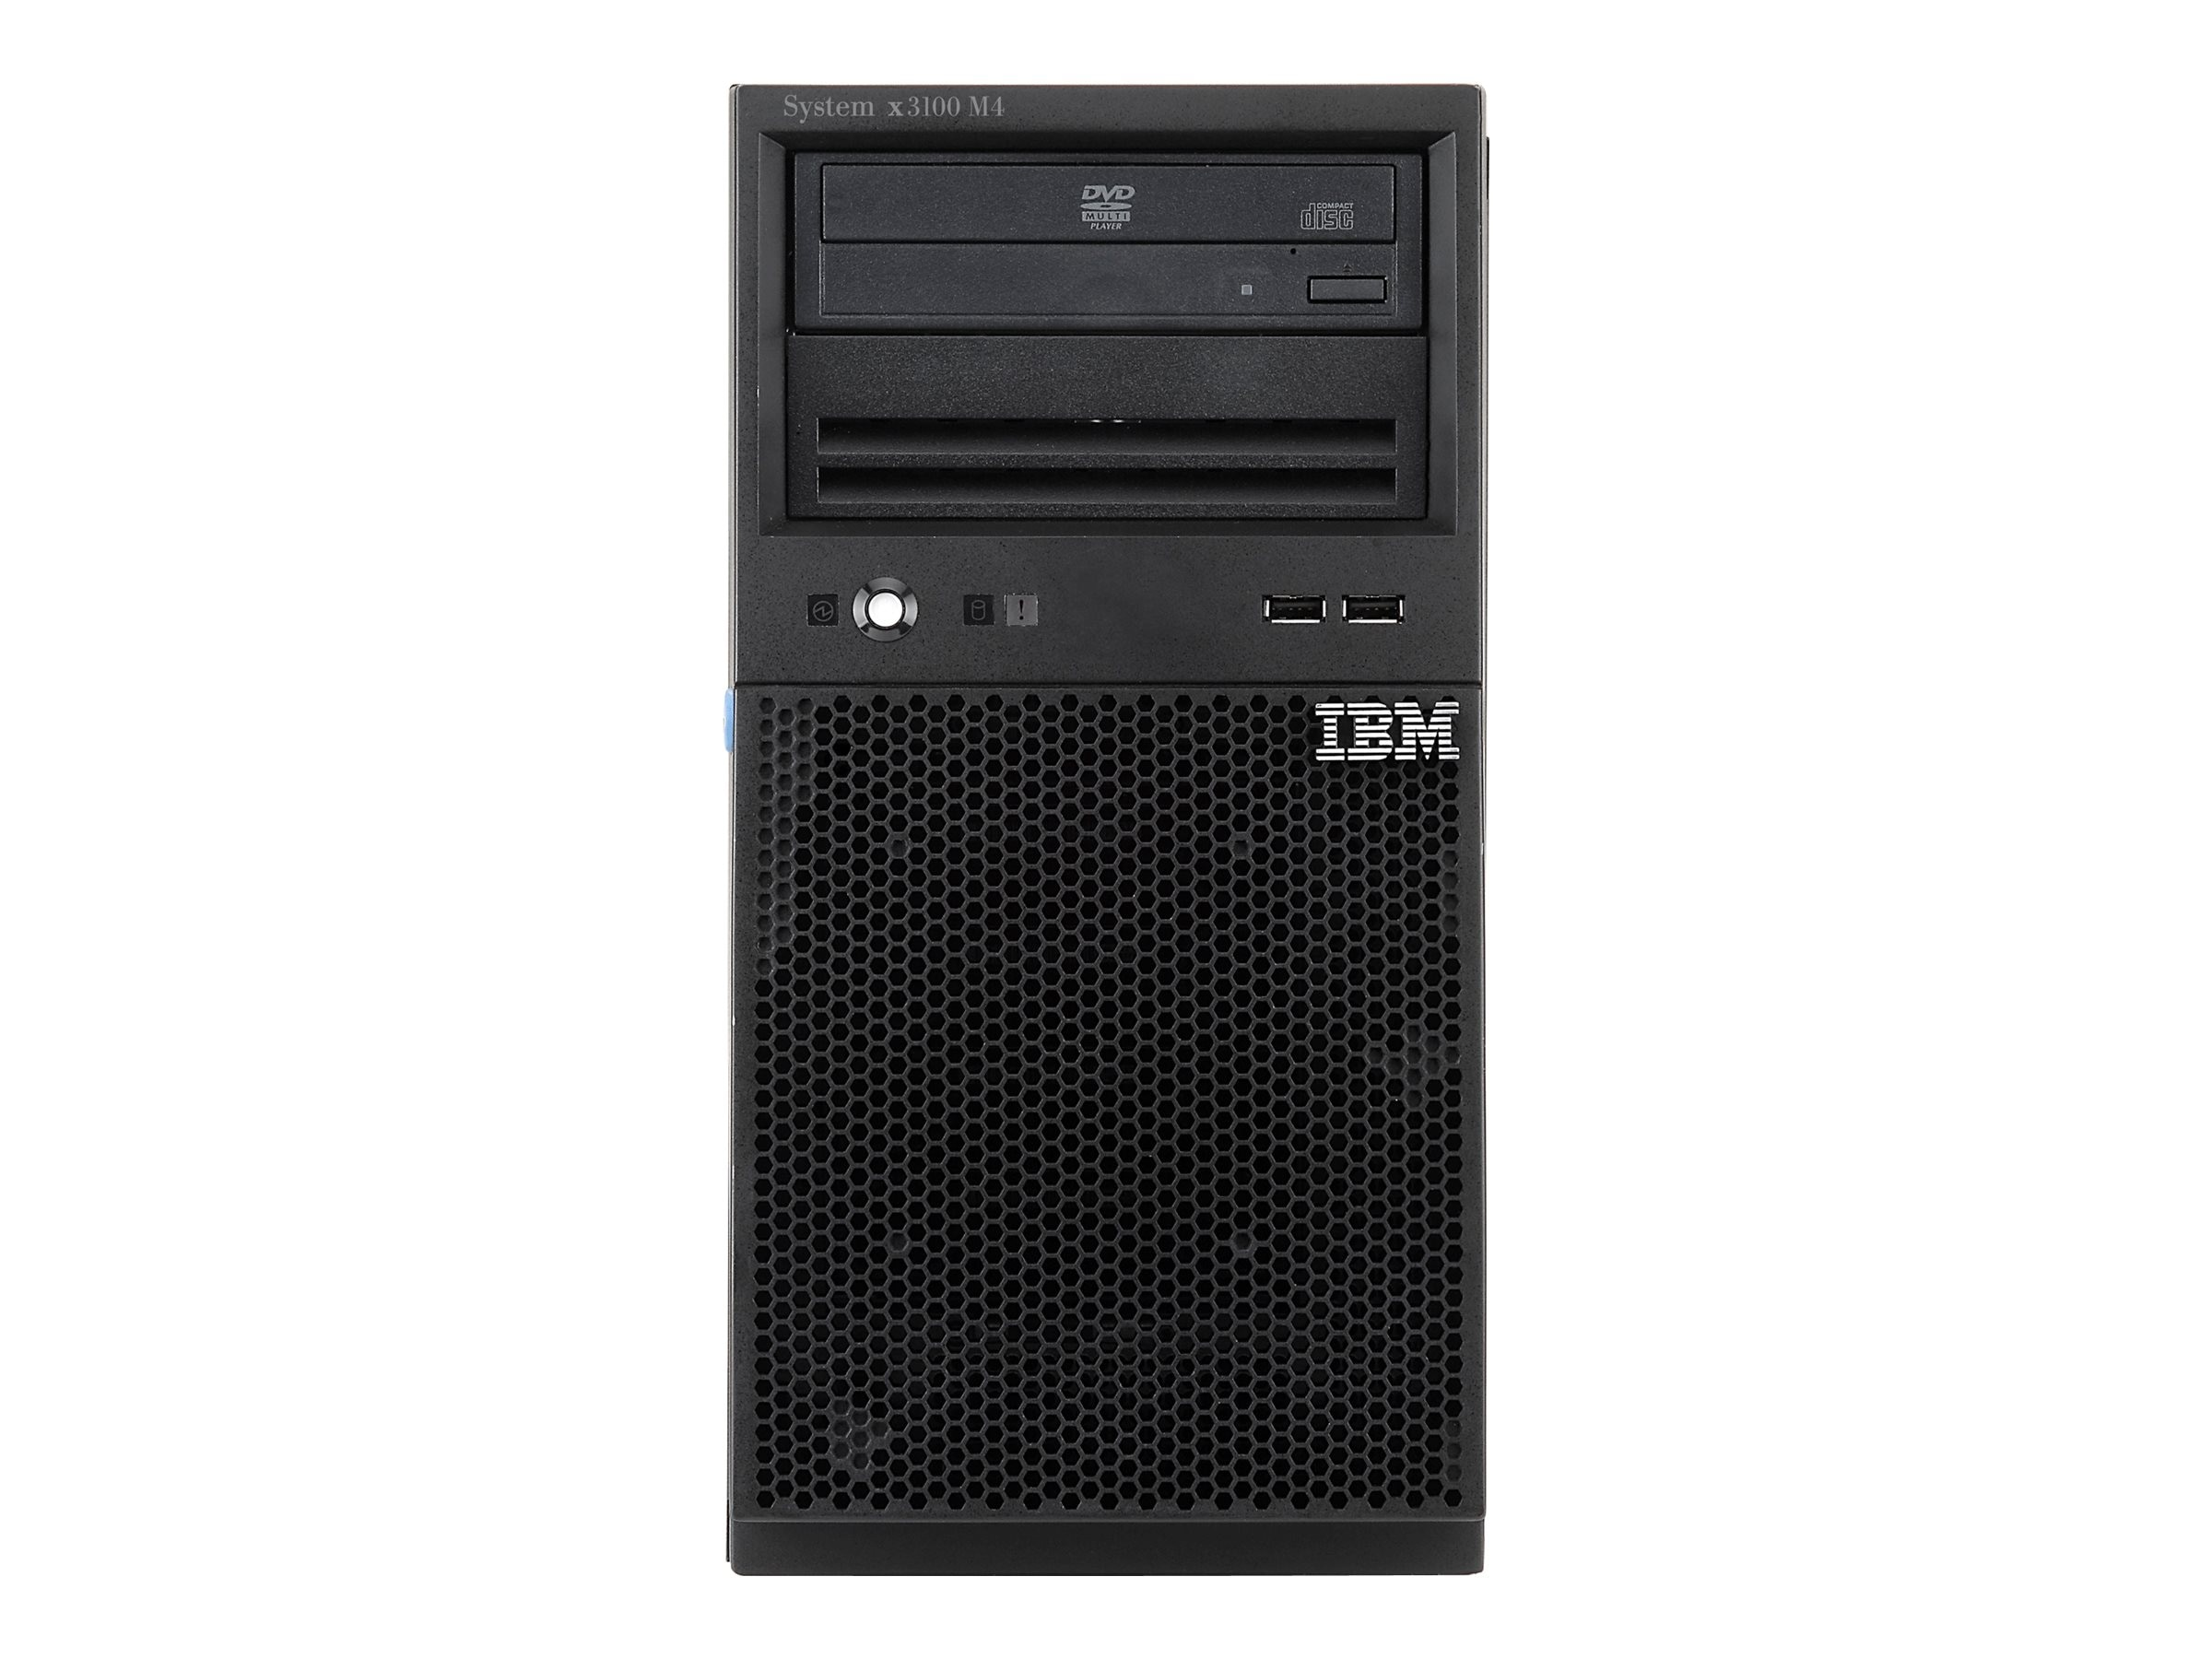 IBM Express System x3100 M4 Intel 3.3GHz Xeon